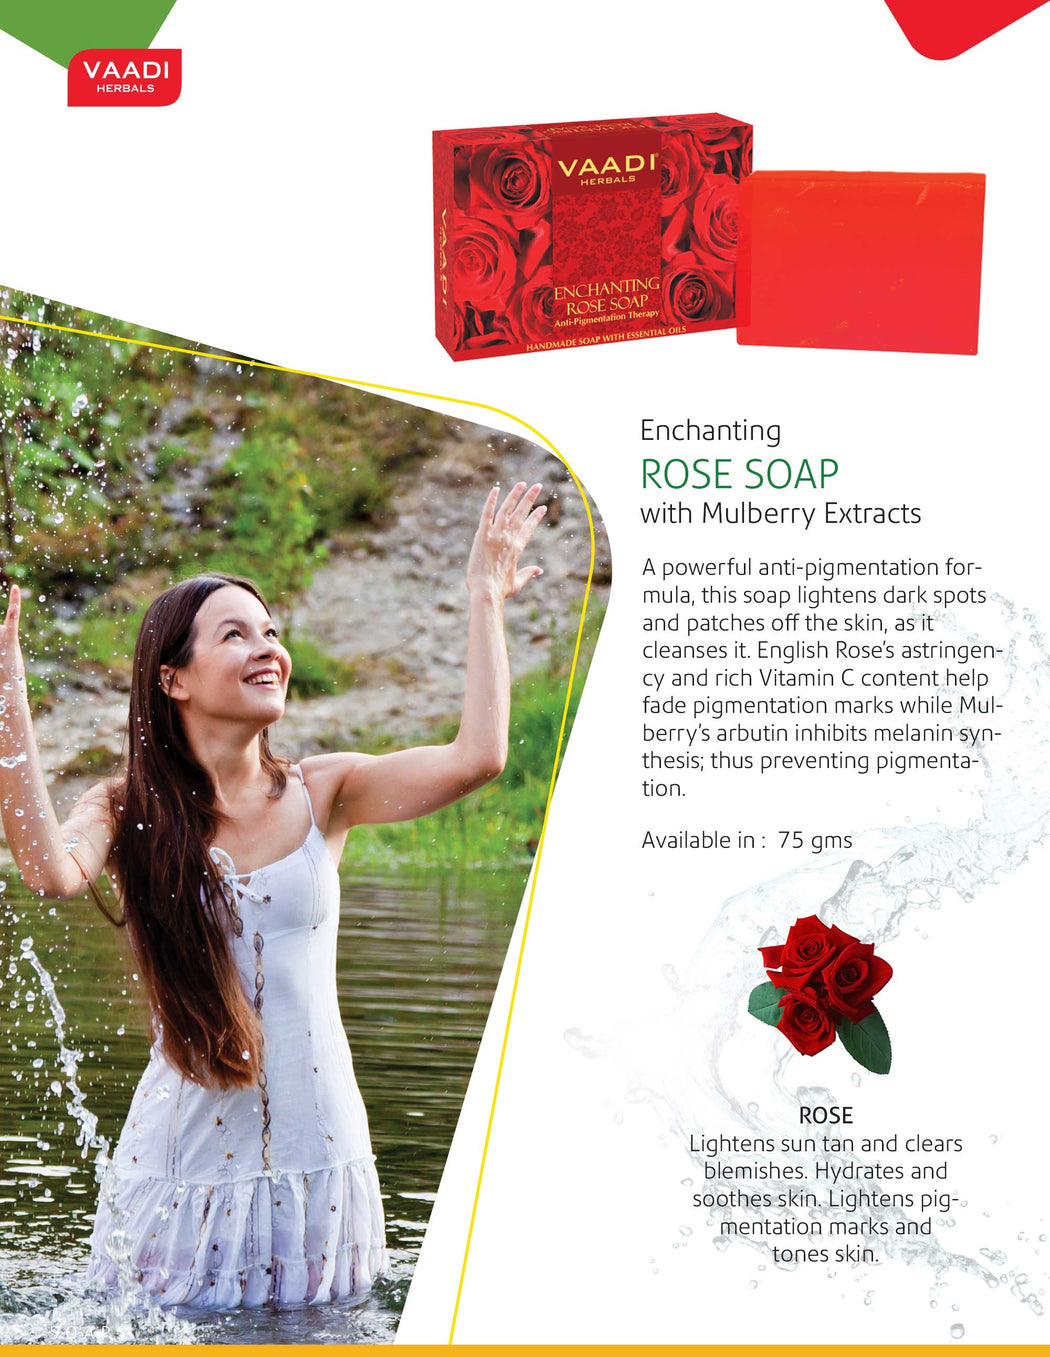 Enchanting Organic Rose Soap with Mulberry Extract - Anti Pigmentation Therapy (3 x 75 gms/2.7 oz)